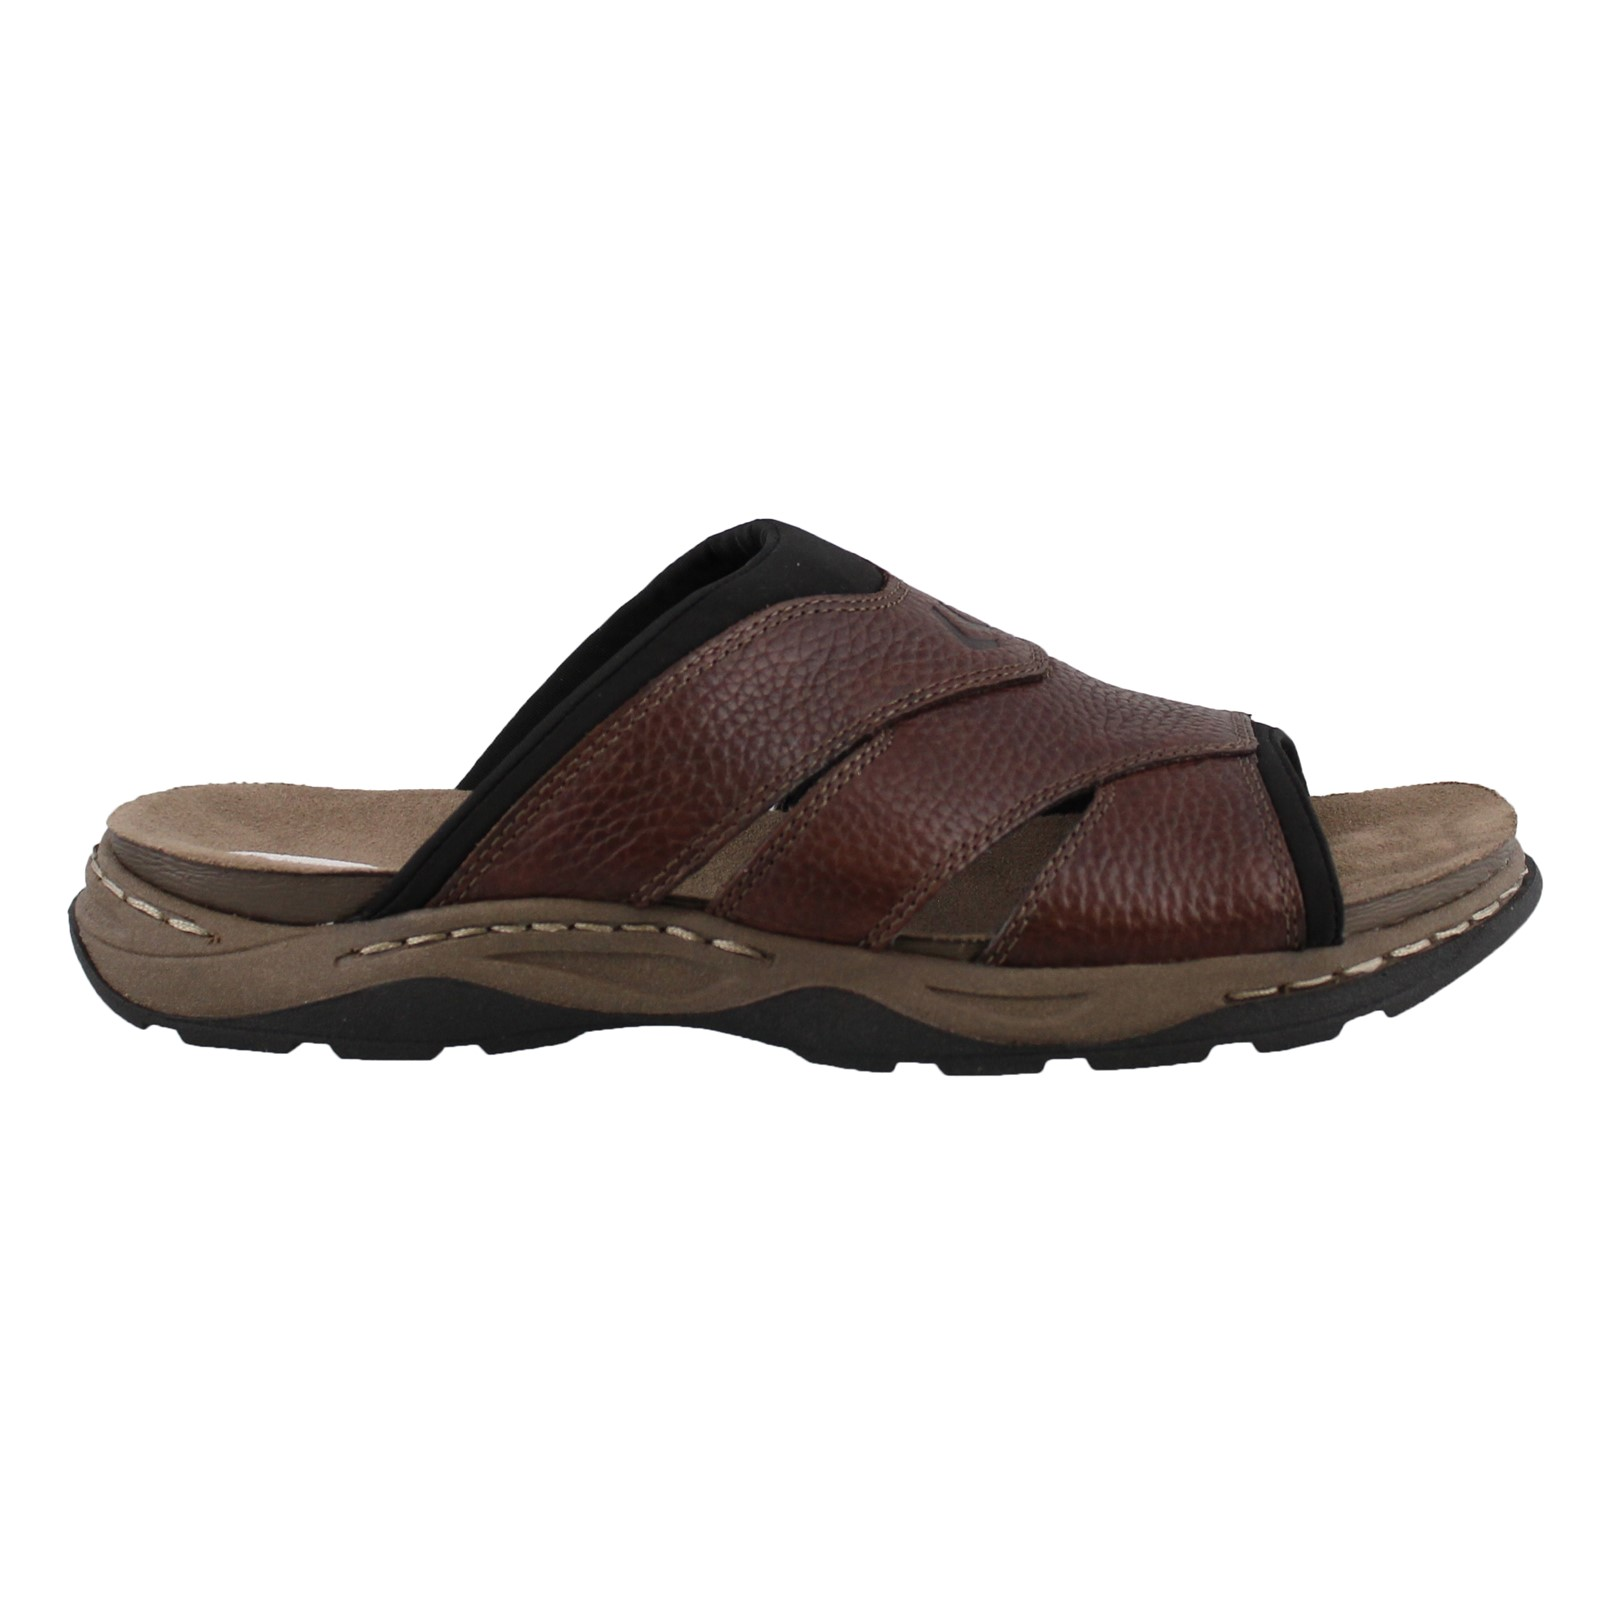 SchollsHarris SandalsPeltz Men's Shoes Slide Dr CxoQBthrsd